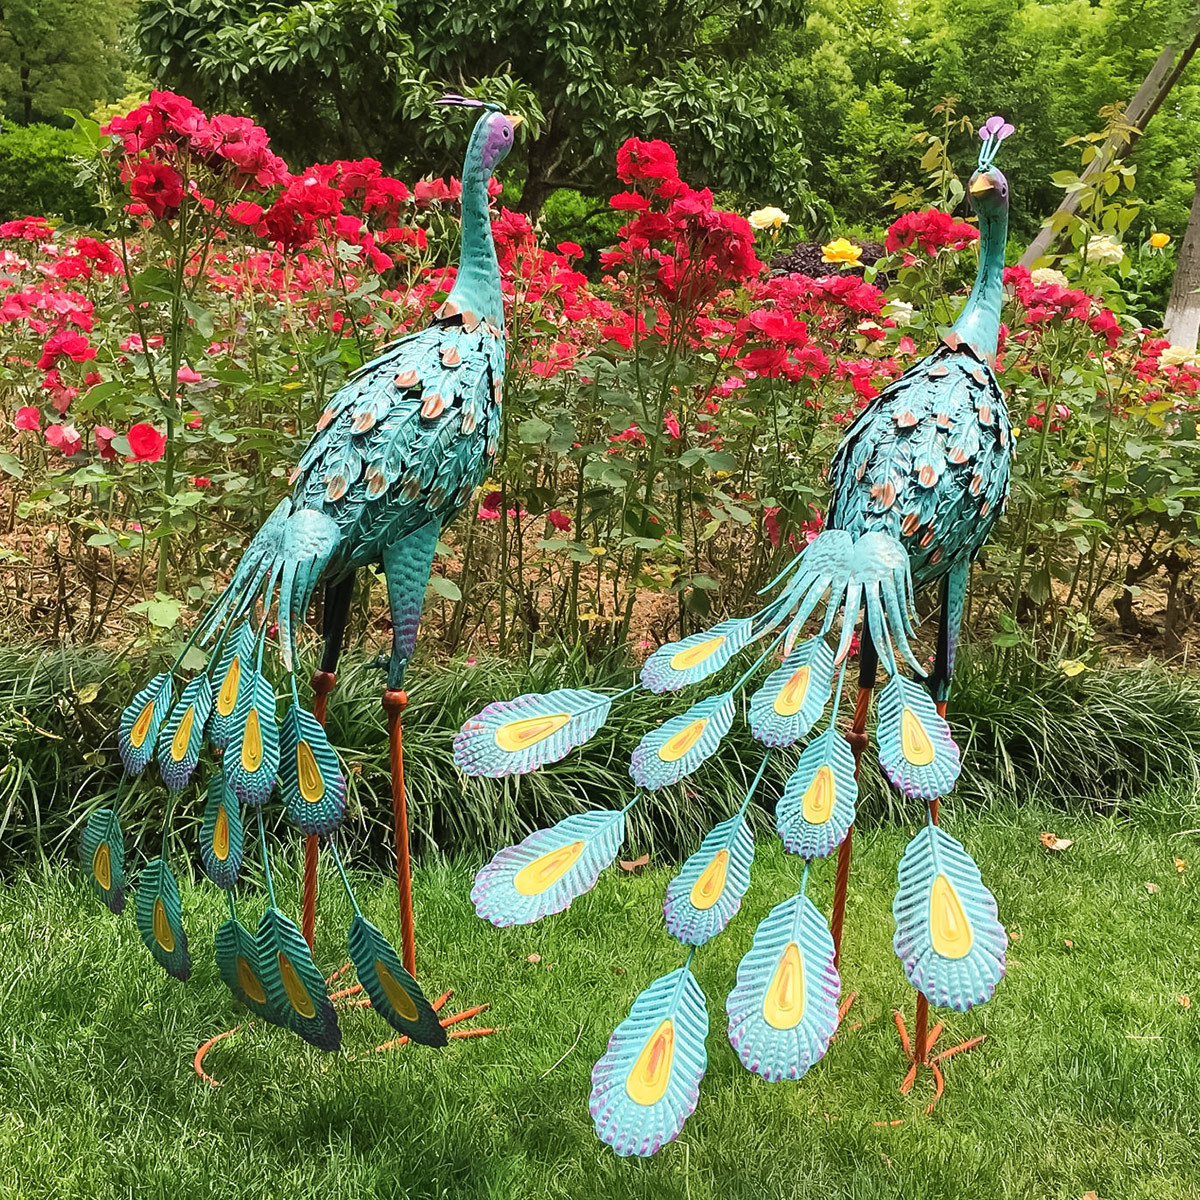 2Pcs Pink Lawn Flamingo Garden Ornaments Pond Outdoor Sculpture Patio Decor